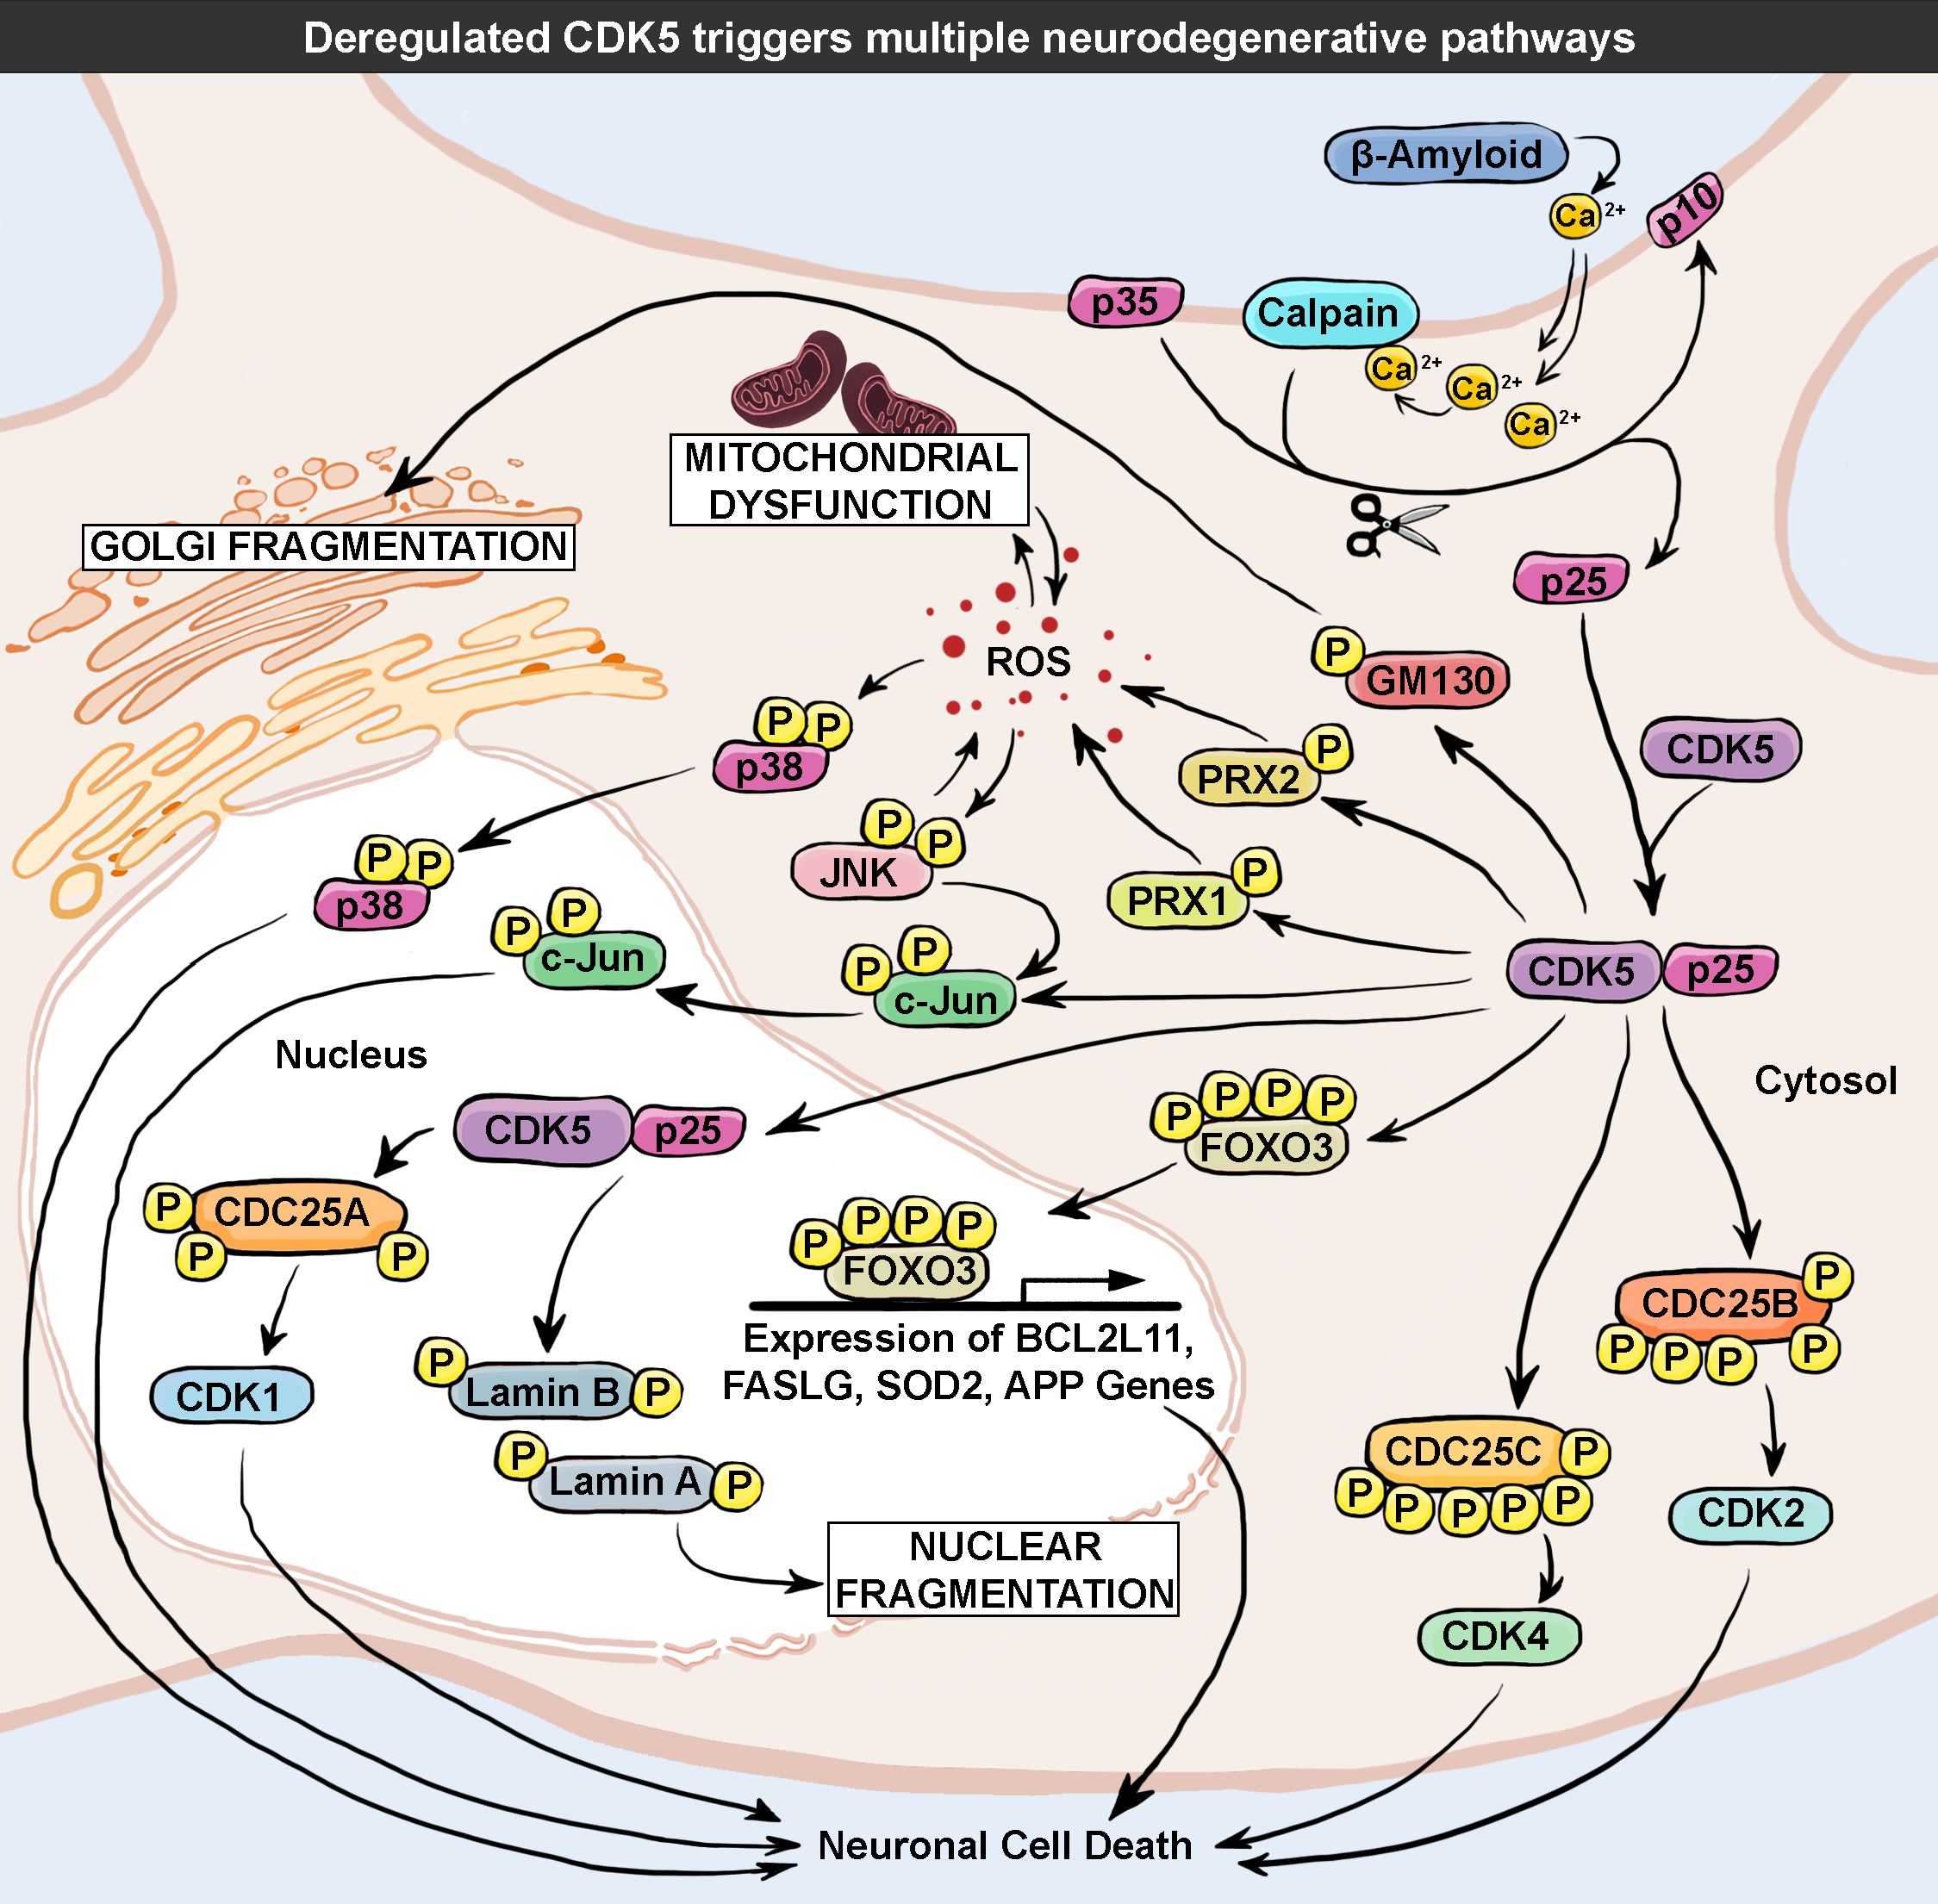 illustration deregulated CDK5 triggers multiple neurodegenerative pathways 72